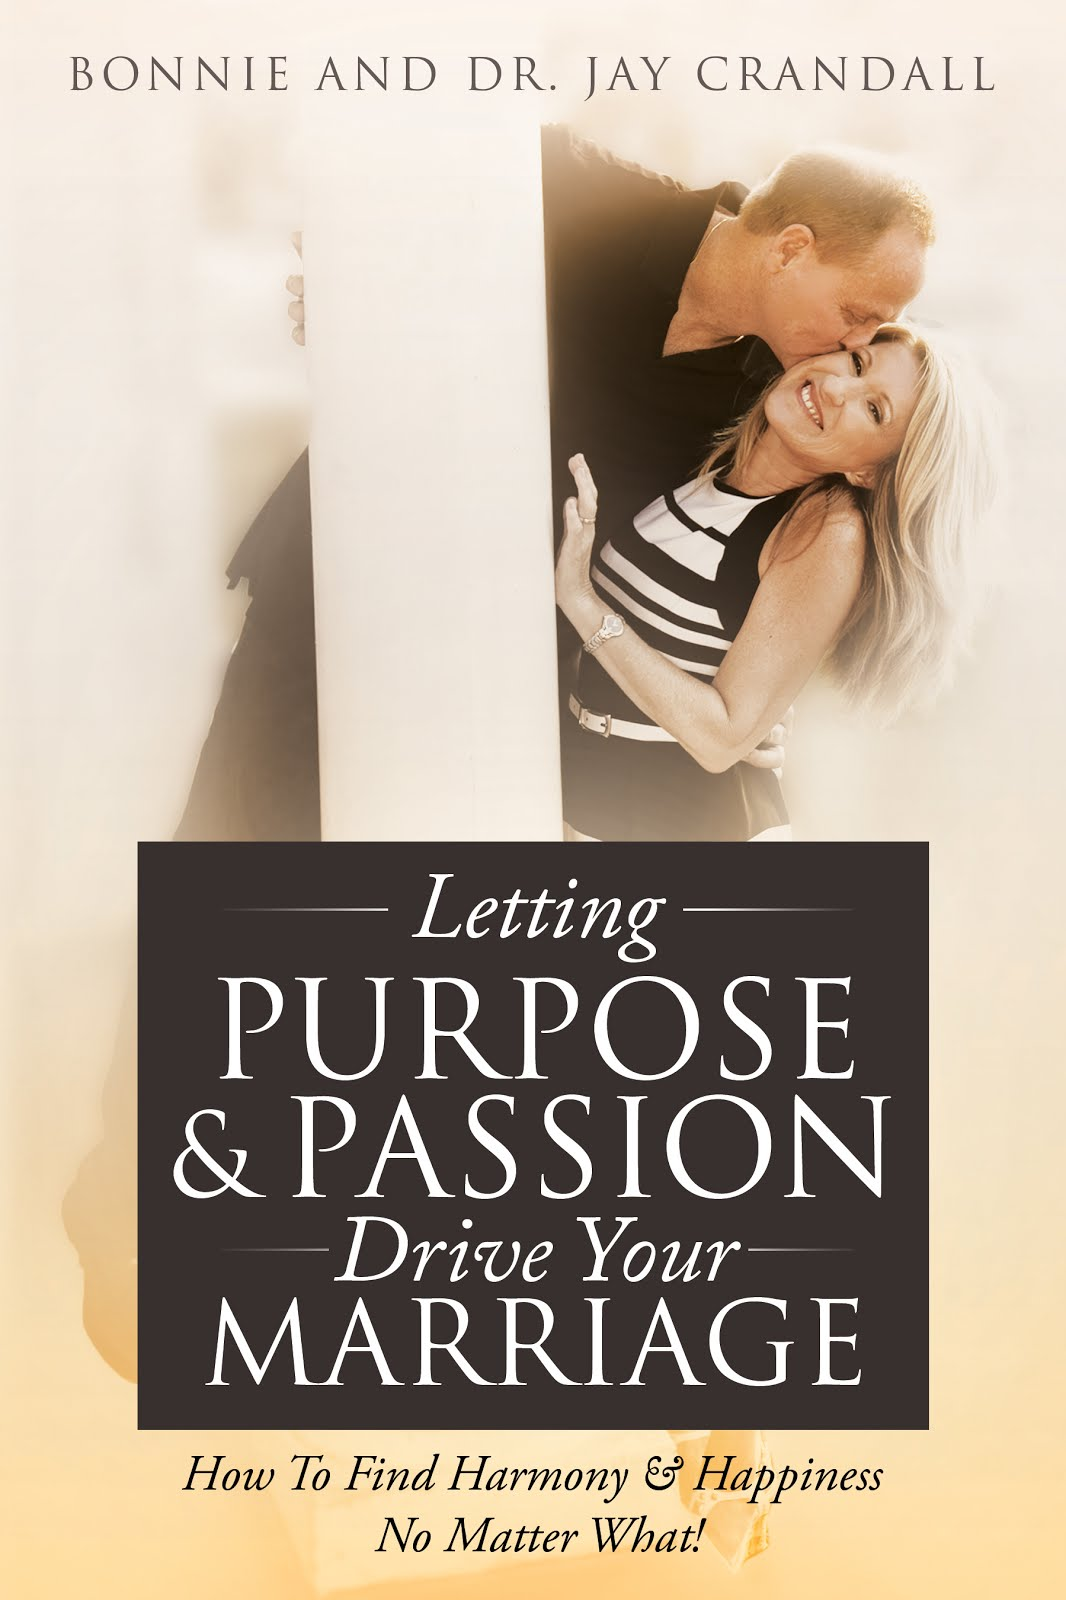 Letting Purpose & Passion Drive Your Marriage